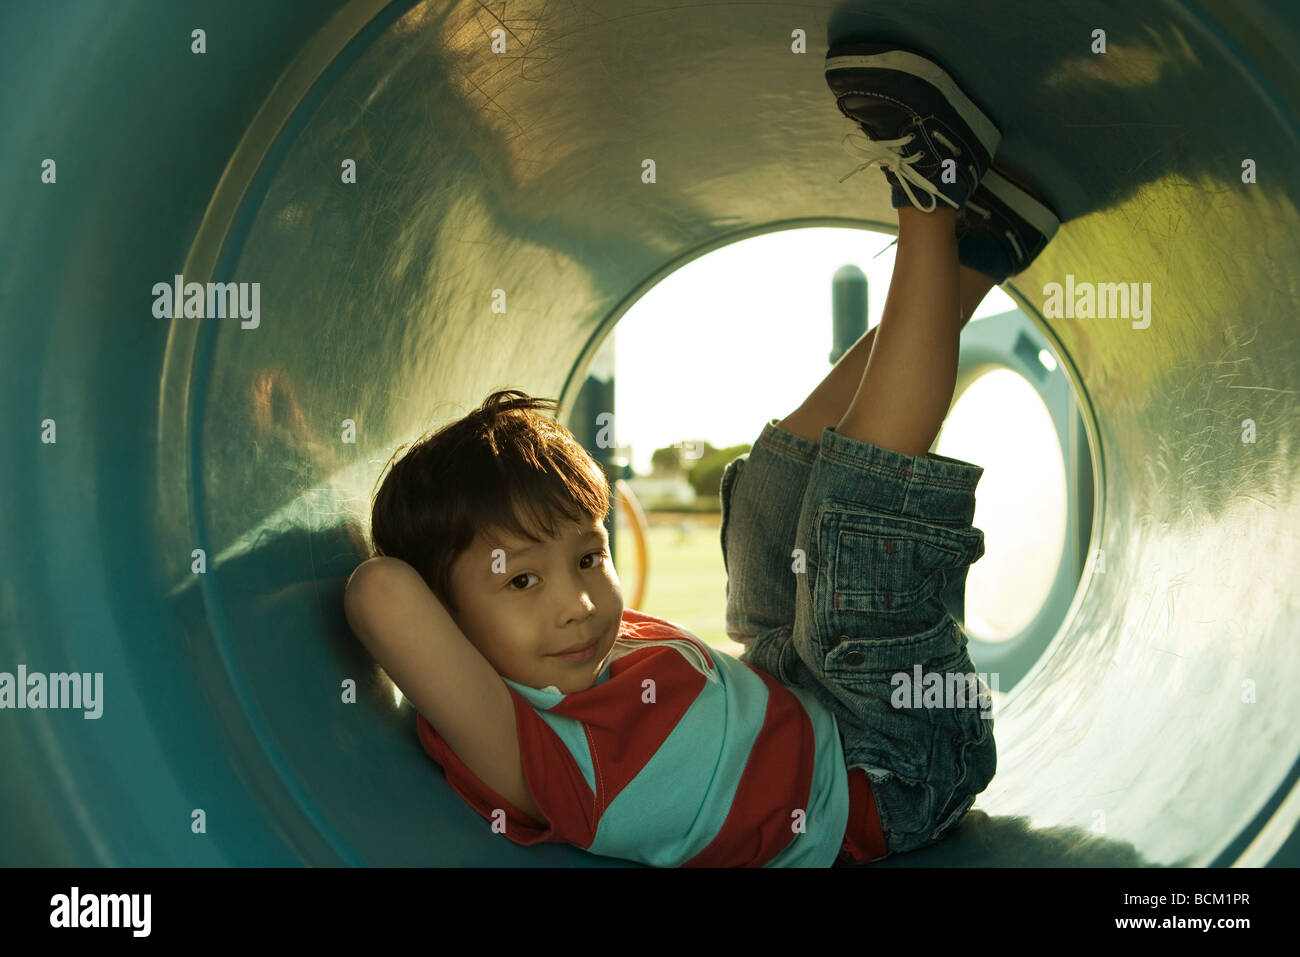 Boy sitting in playground tunnel with legs up, looking at camera, full length Stock Photo